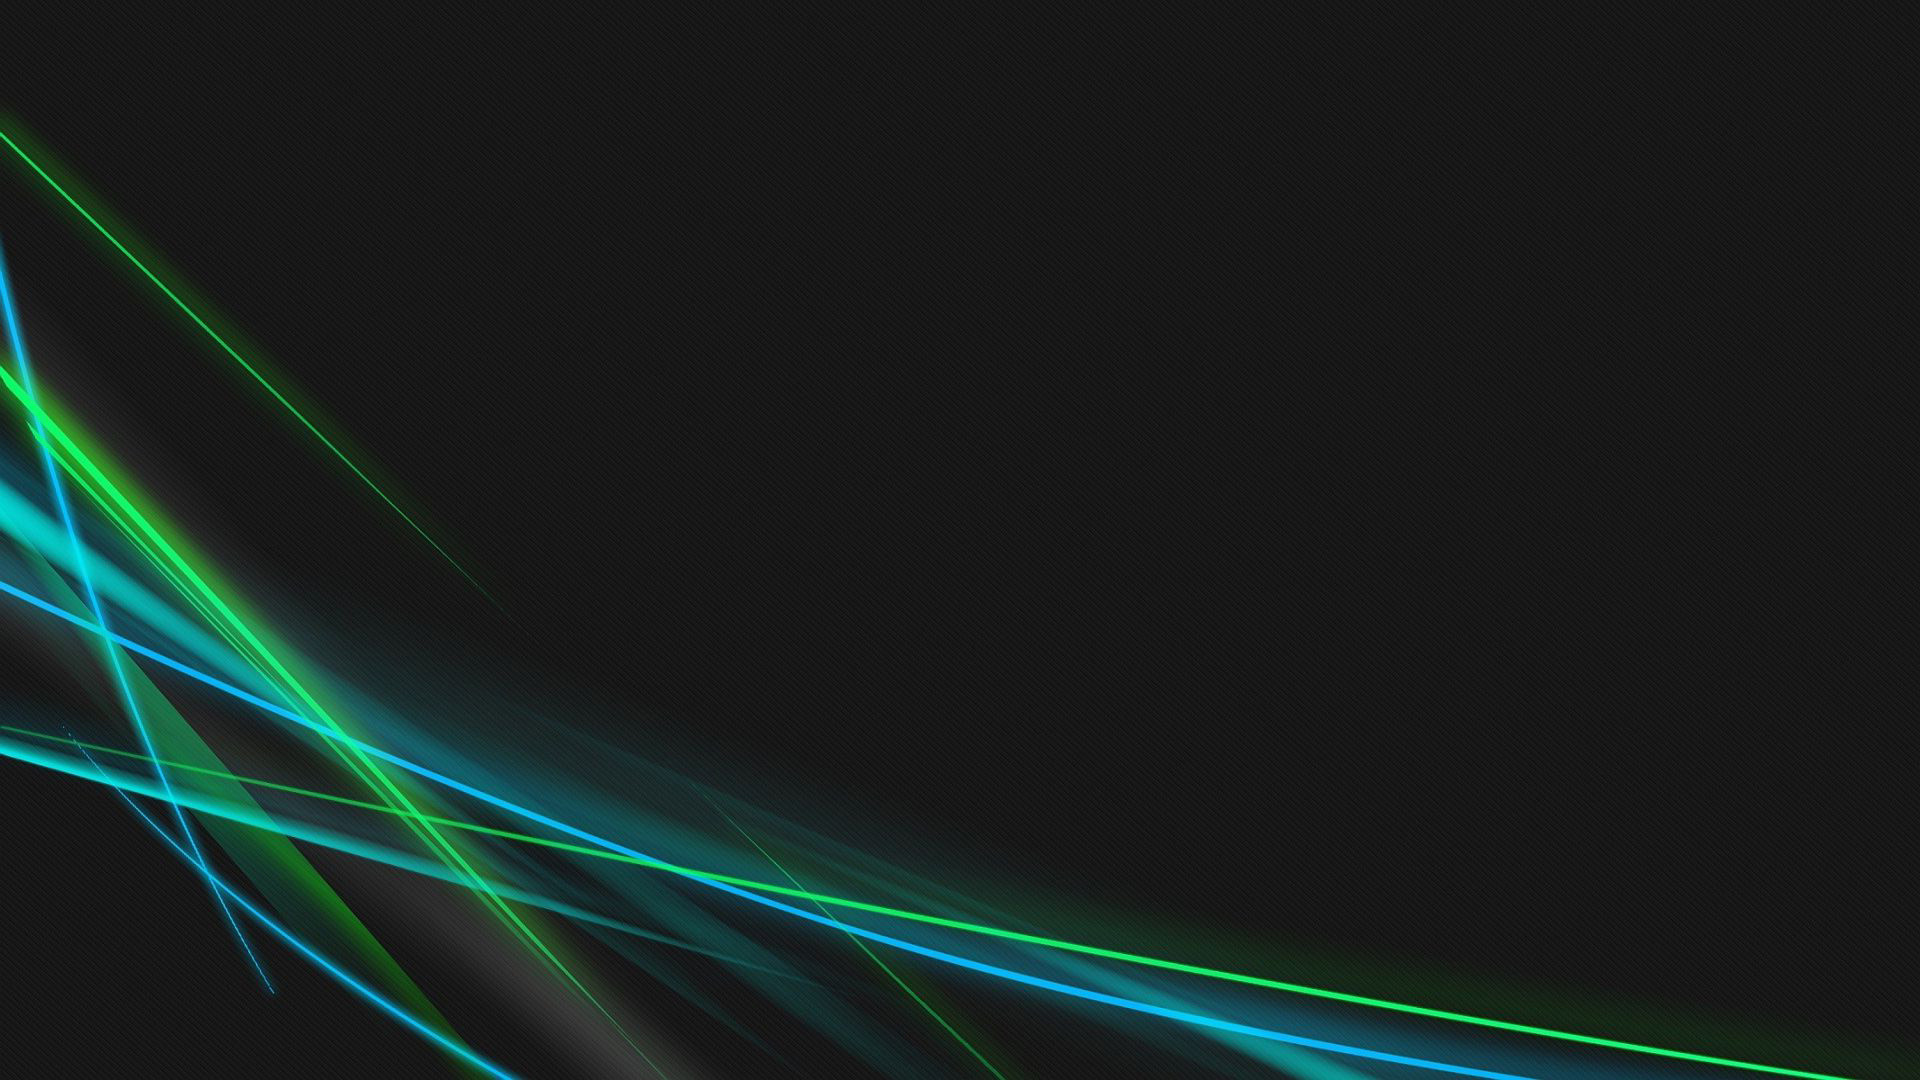 1920x1080 Blue Green Neon Lines HD Wallpaper 1 - 1920 X 1080